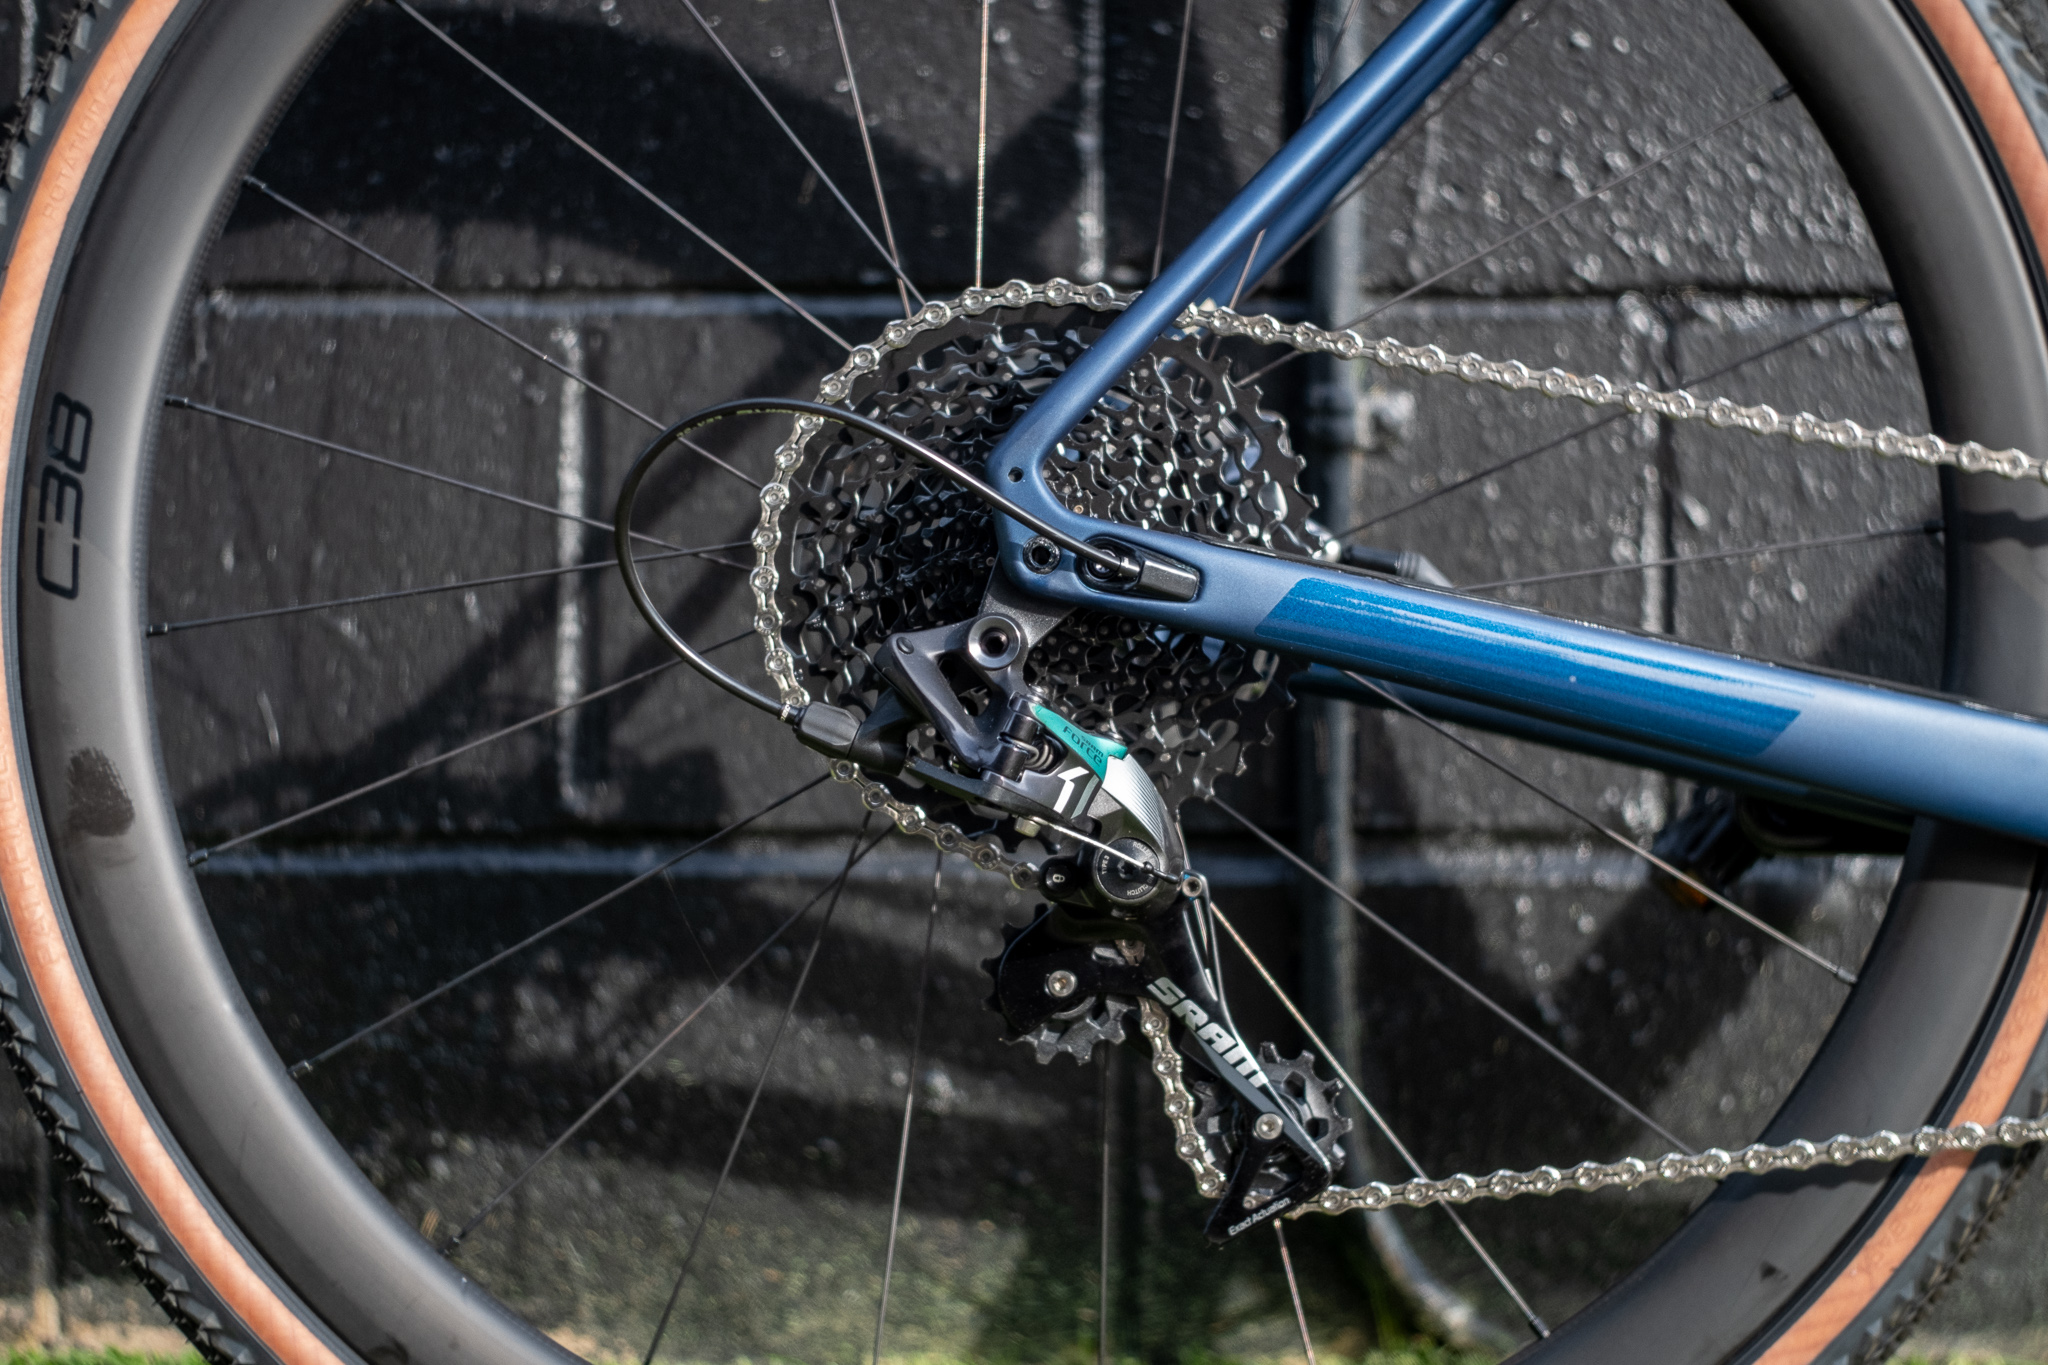 2020 Specialized Diverge Comp X1 rear wheel and cassette detail